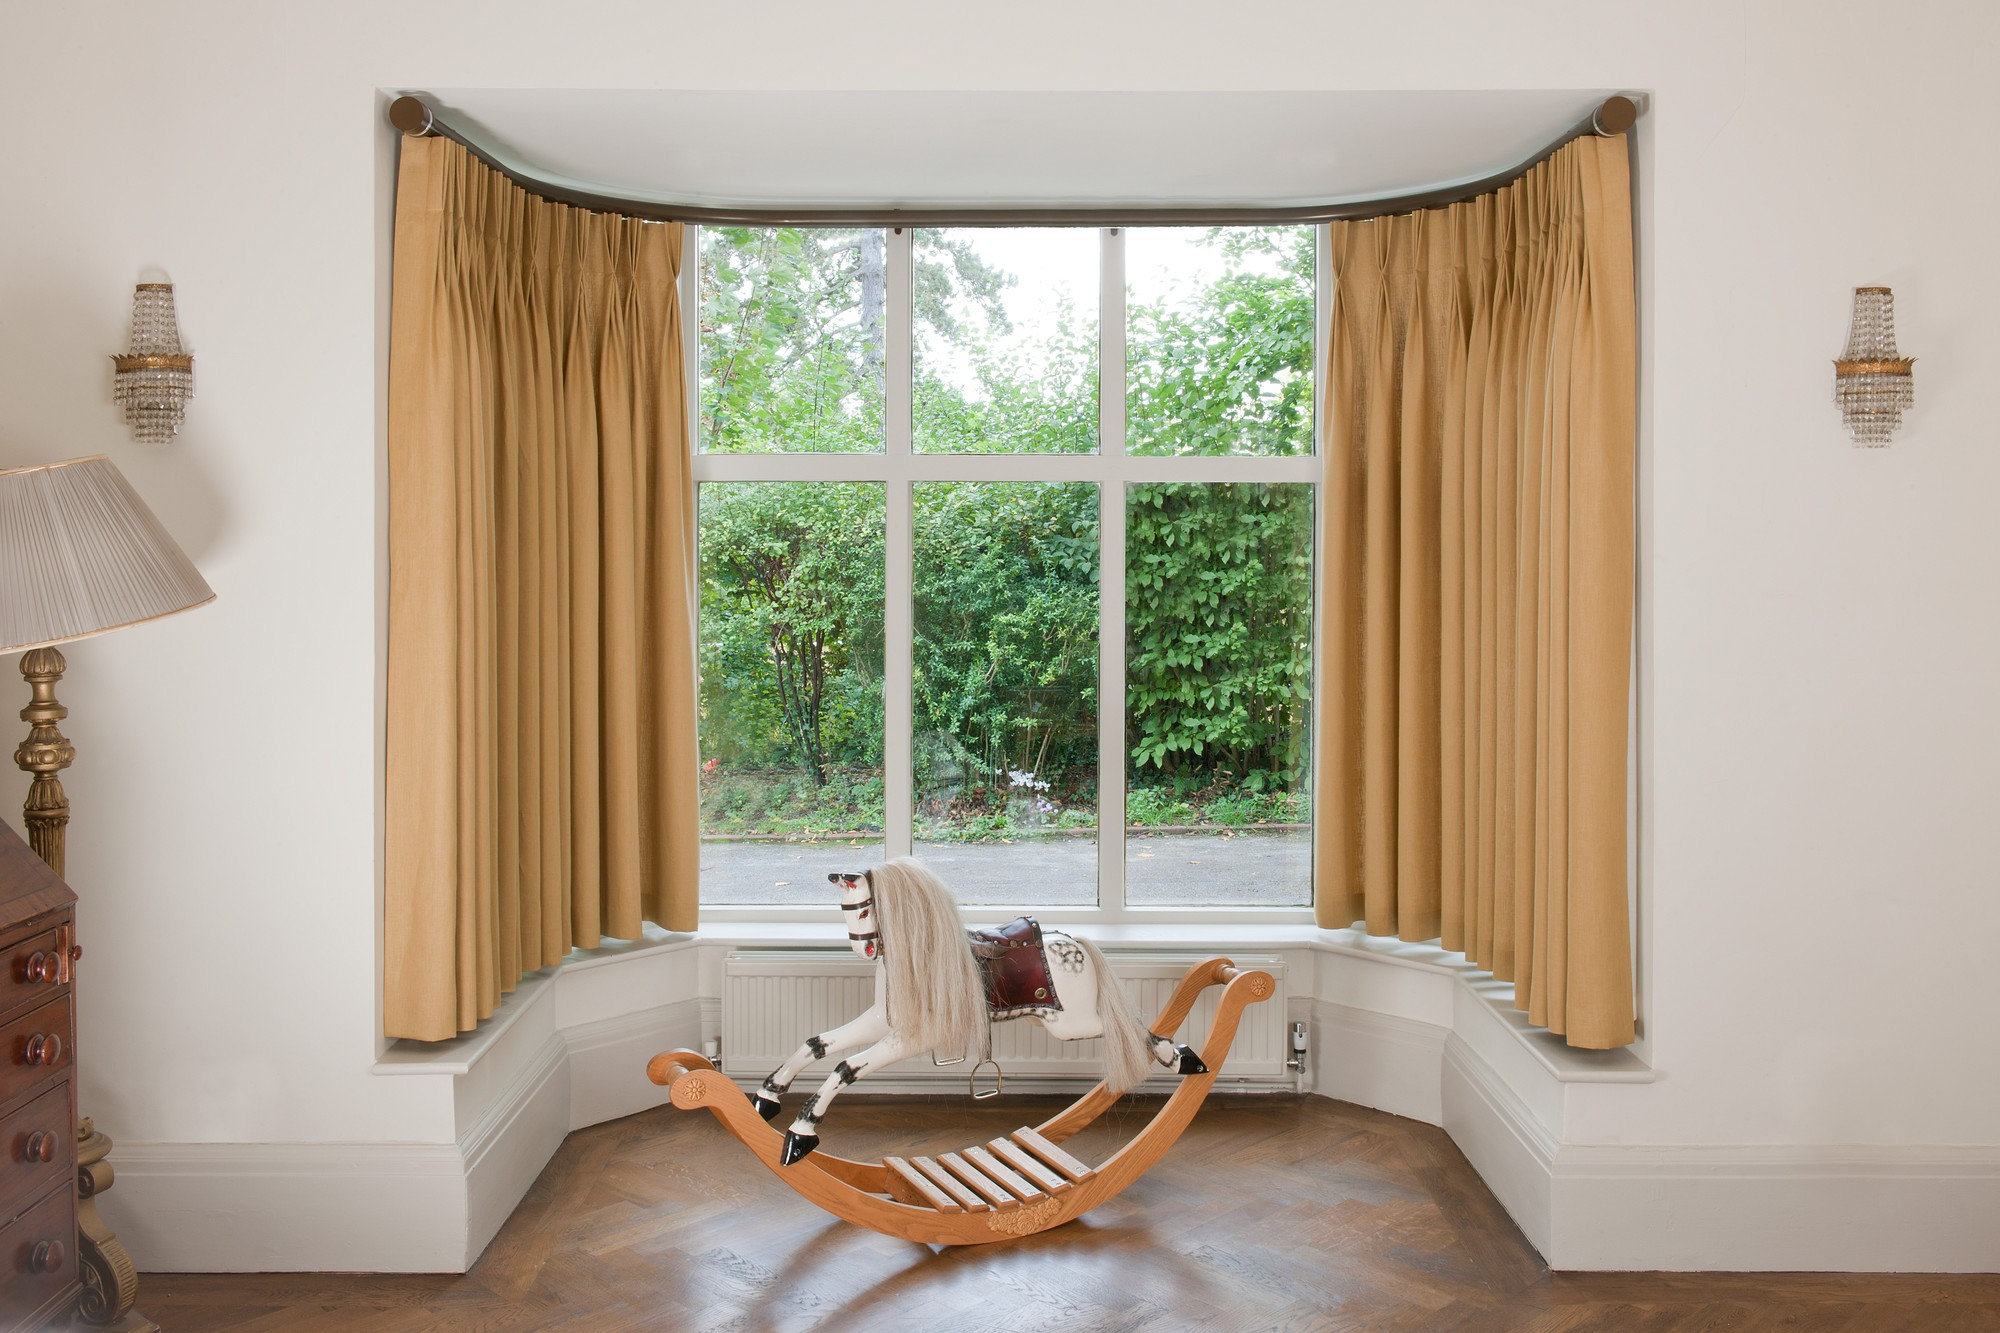 Bay curtain pole with curtains hanging